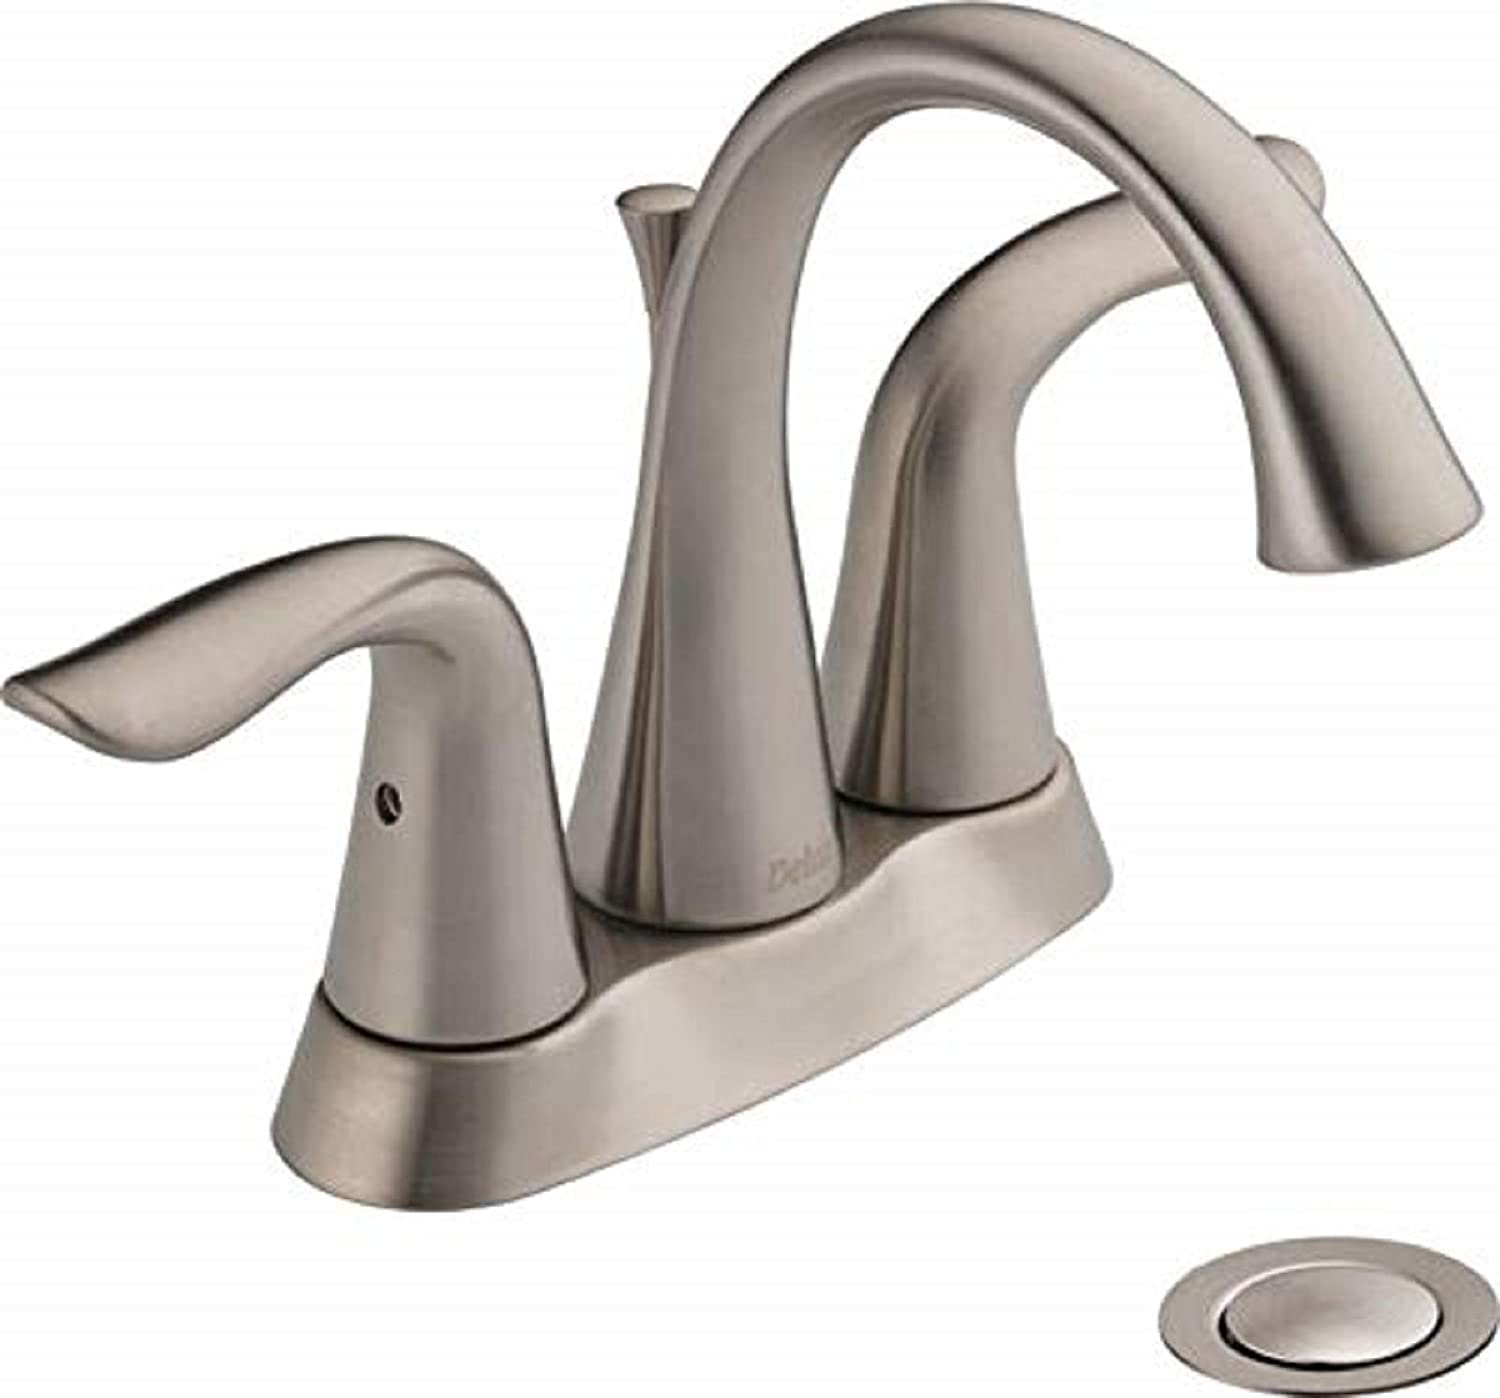 Delta Faucet Lahara Centerset Bathroom Faucet Brushed Nickel, Bathroom Sink  Faucet, Diamond Seal Technology, Metal Drain Assembly, Stainless ...